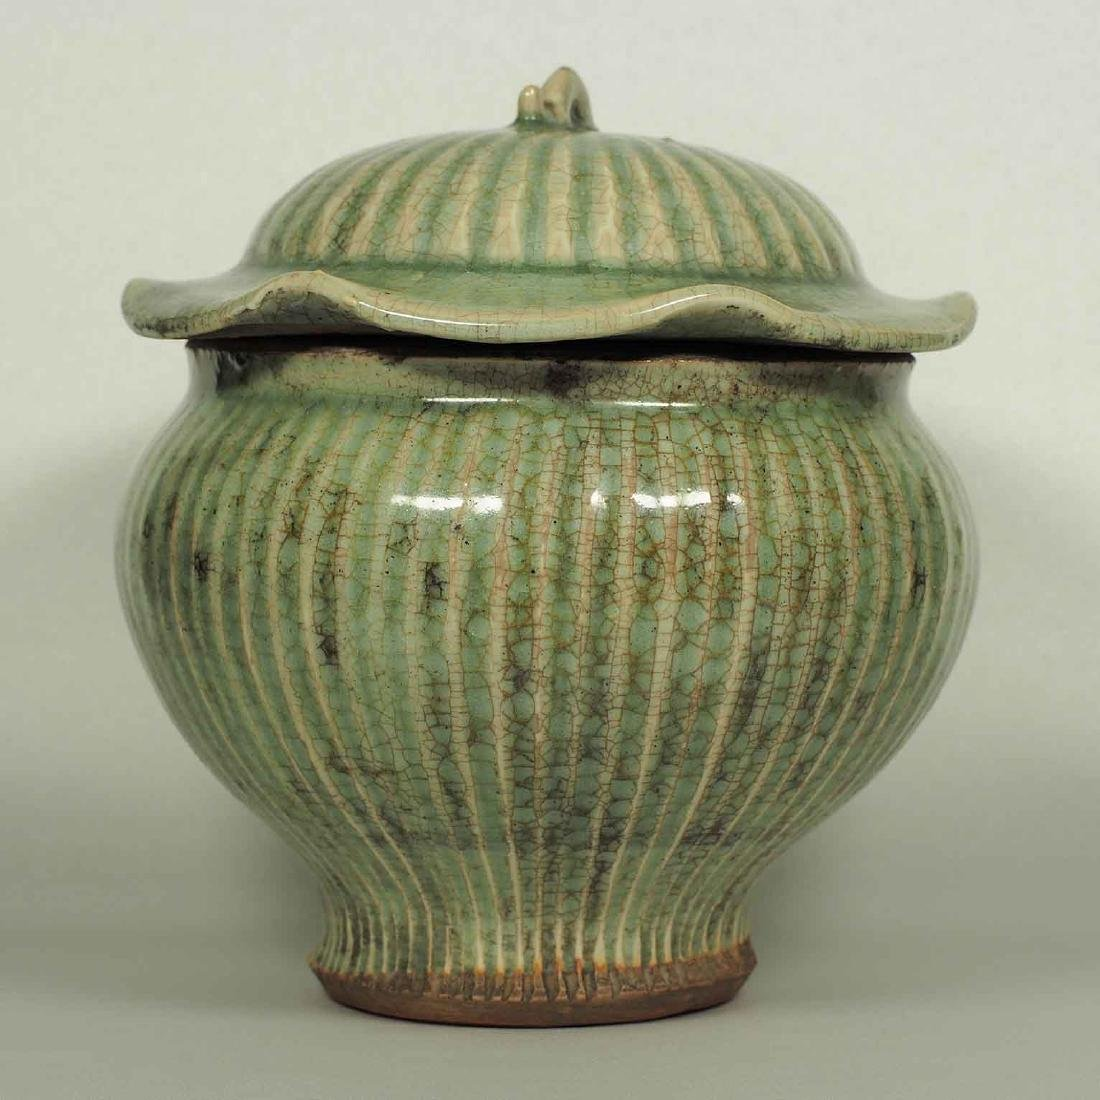 Longquan Fluted Jar with Lid, late Southern Song-early - 3